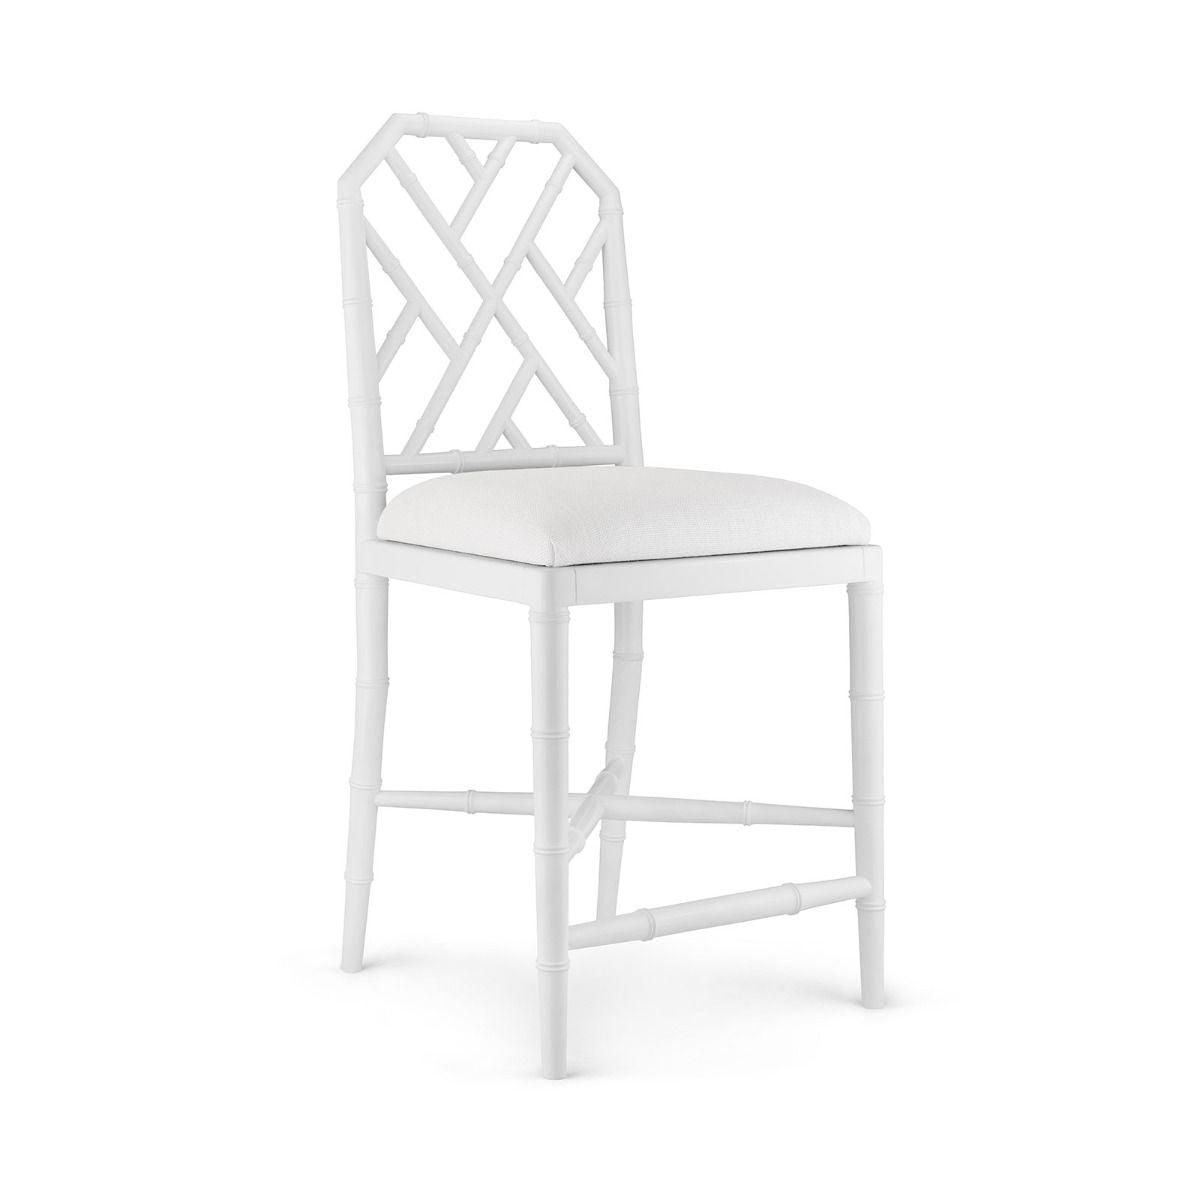 Bungalow 5 - JARDIN COUNTER STOOL, WHITE